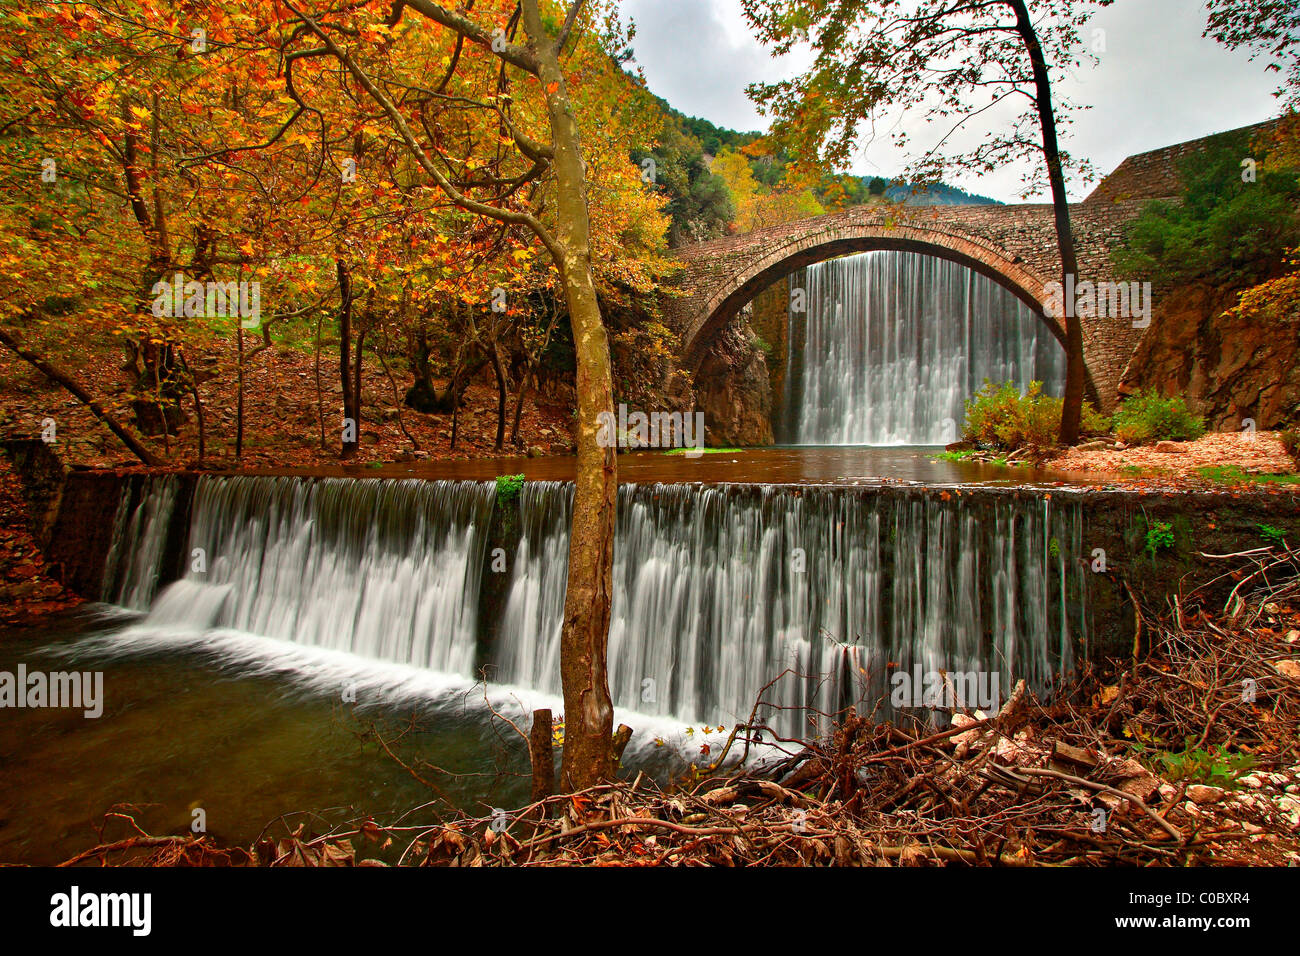 An old stone, arched bridge, between two waterfalls in Paleokarya, Trikala prefecture, Thessaly, Greece - Stock Image